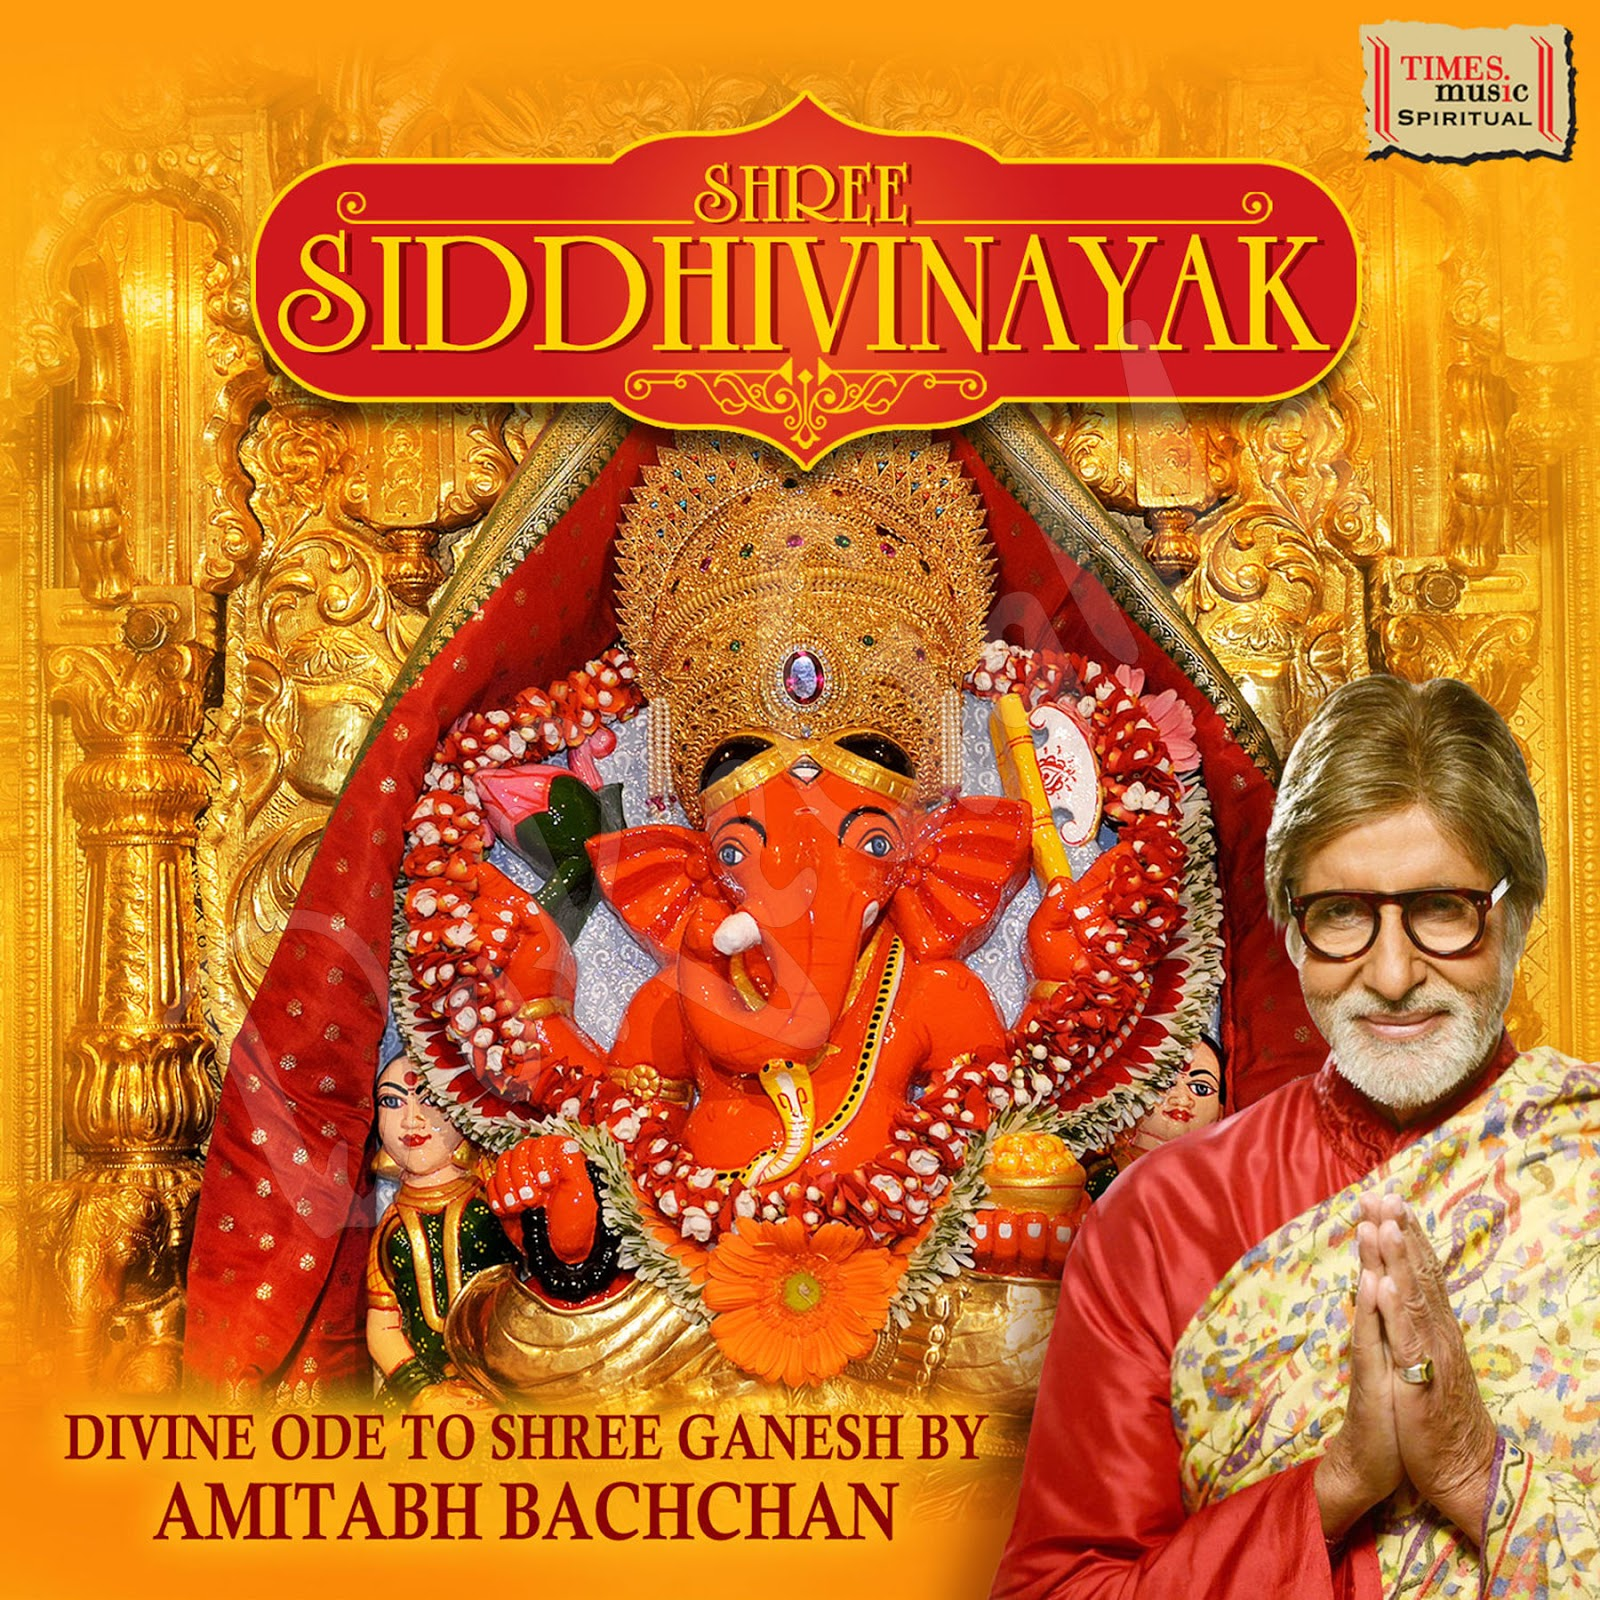 Amitabh Bachchan Shree-Siddhivinayak-2016-CD-Front-Cover-Poster-Wallpaper-HD